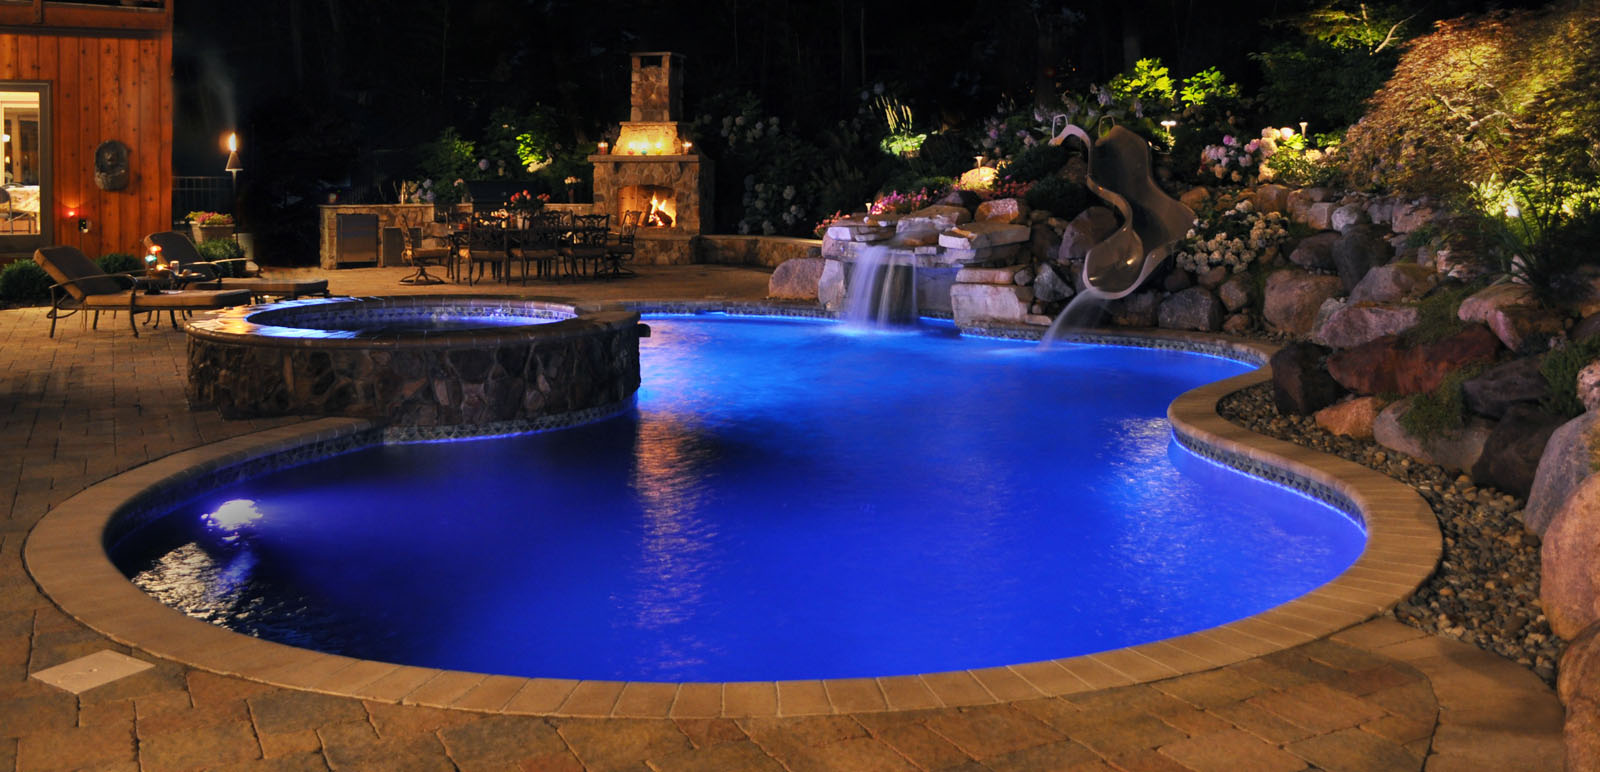 Patio Pool And Outdoor Fireplace Illuminated At Night Woodcliff Lake Nj Clc Landscape Design